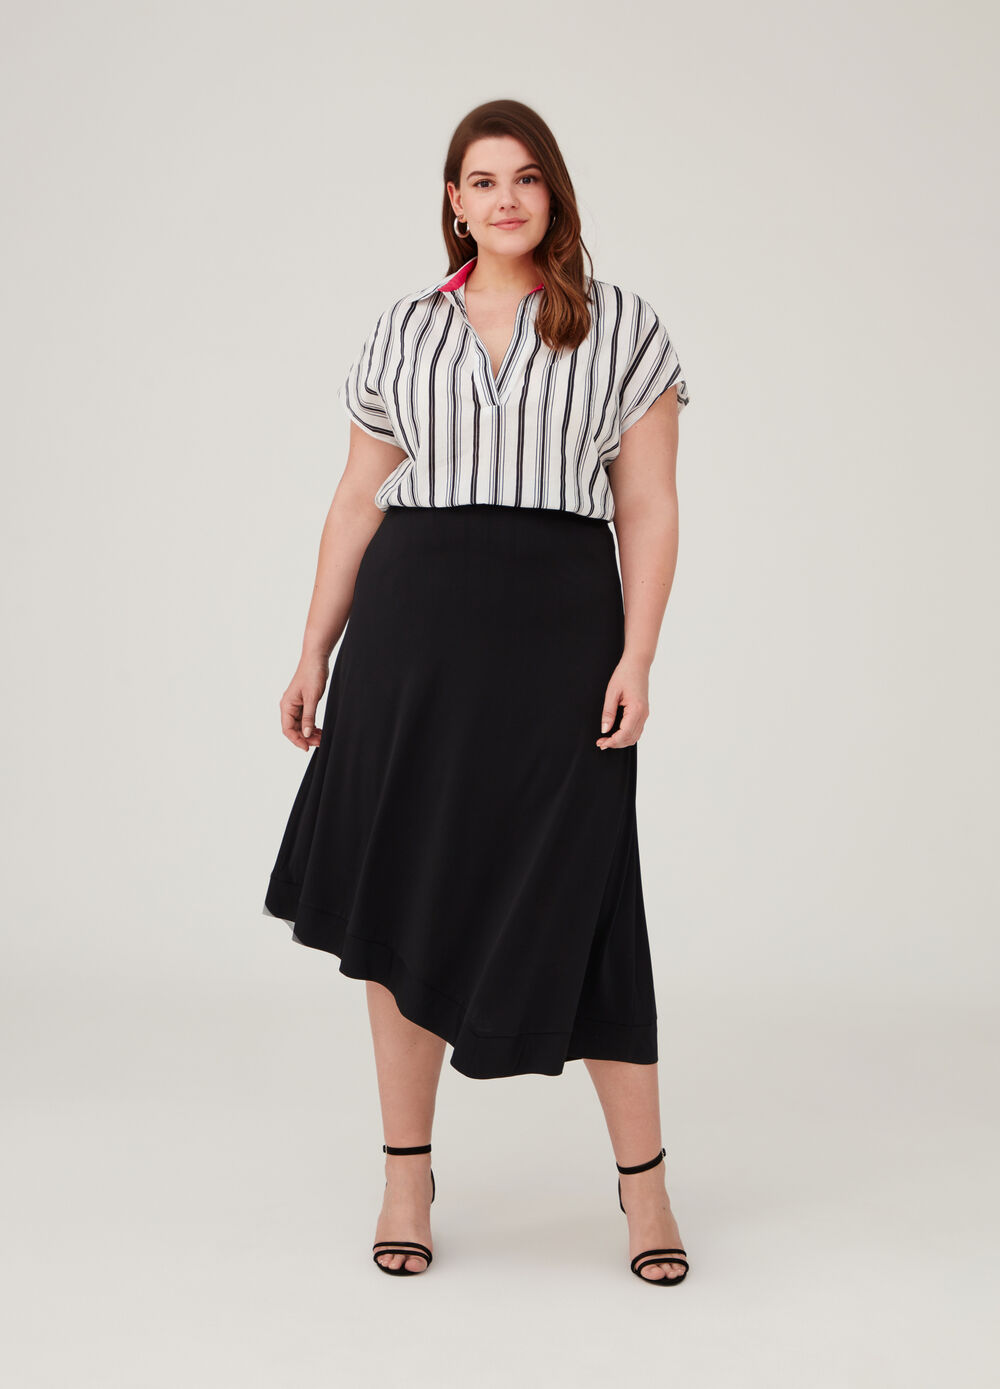 Curvy stretch skirt with high waist